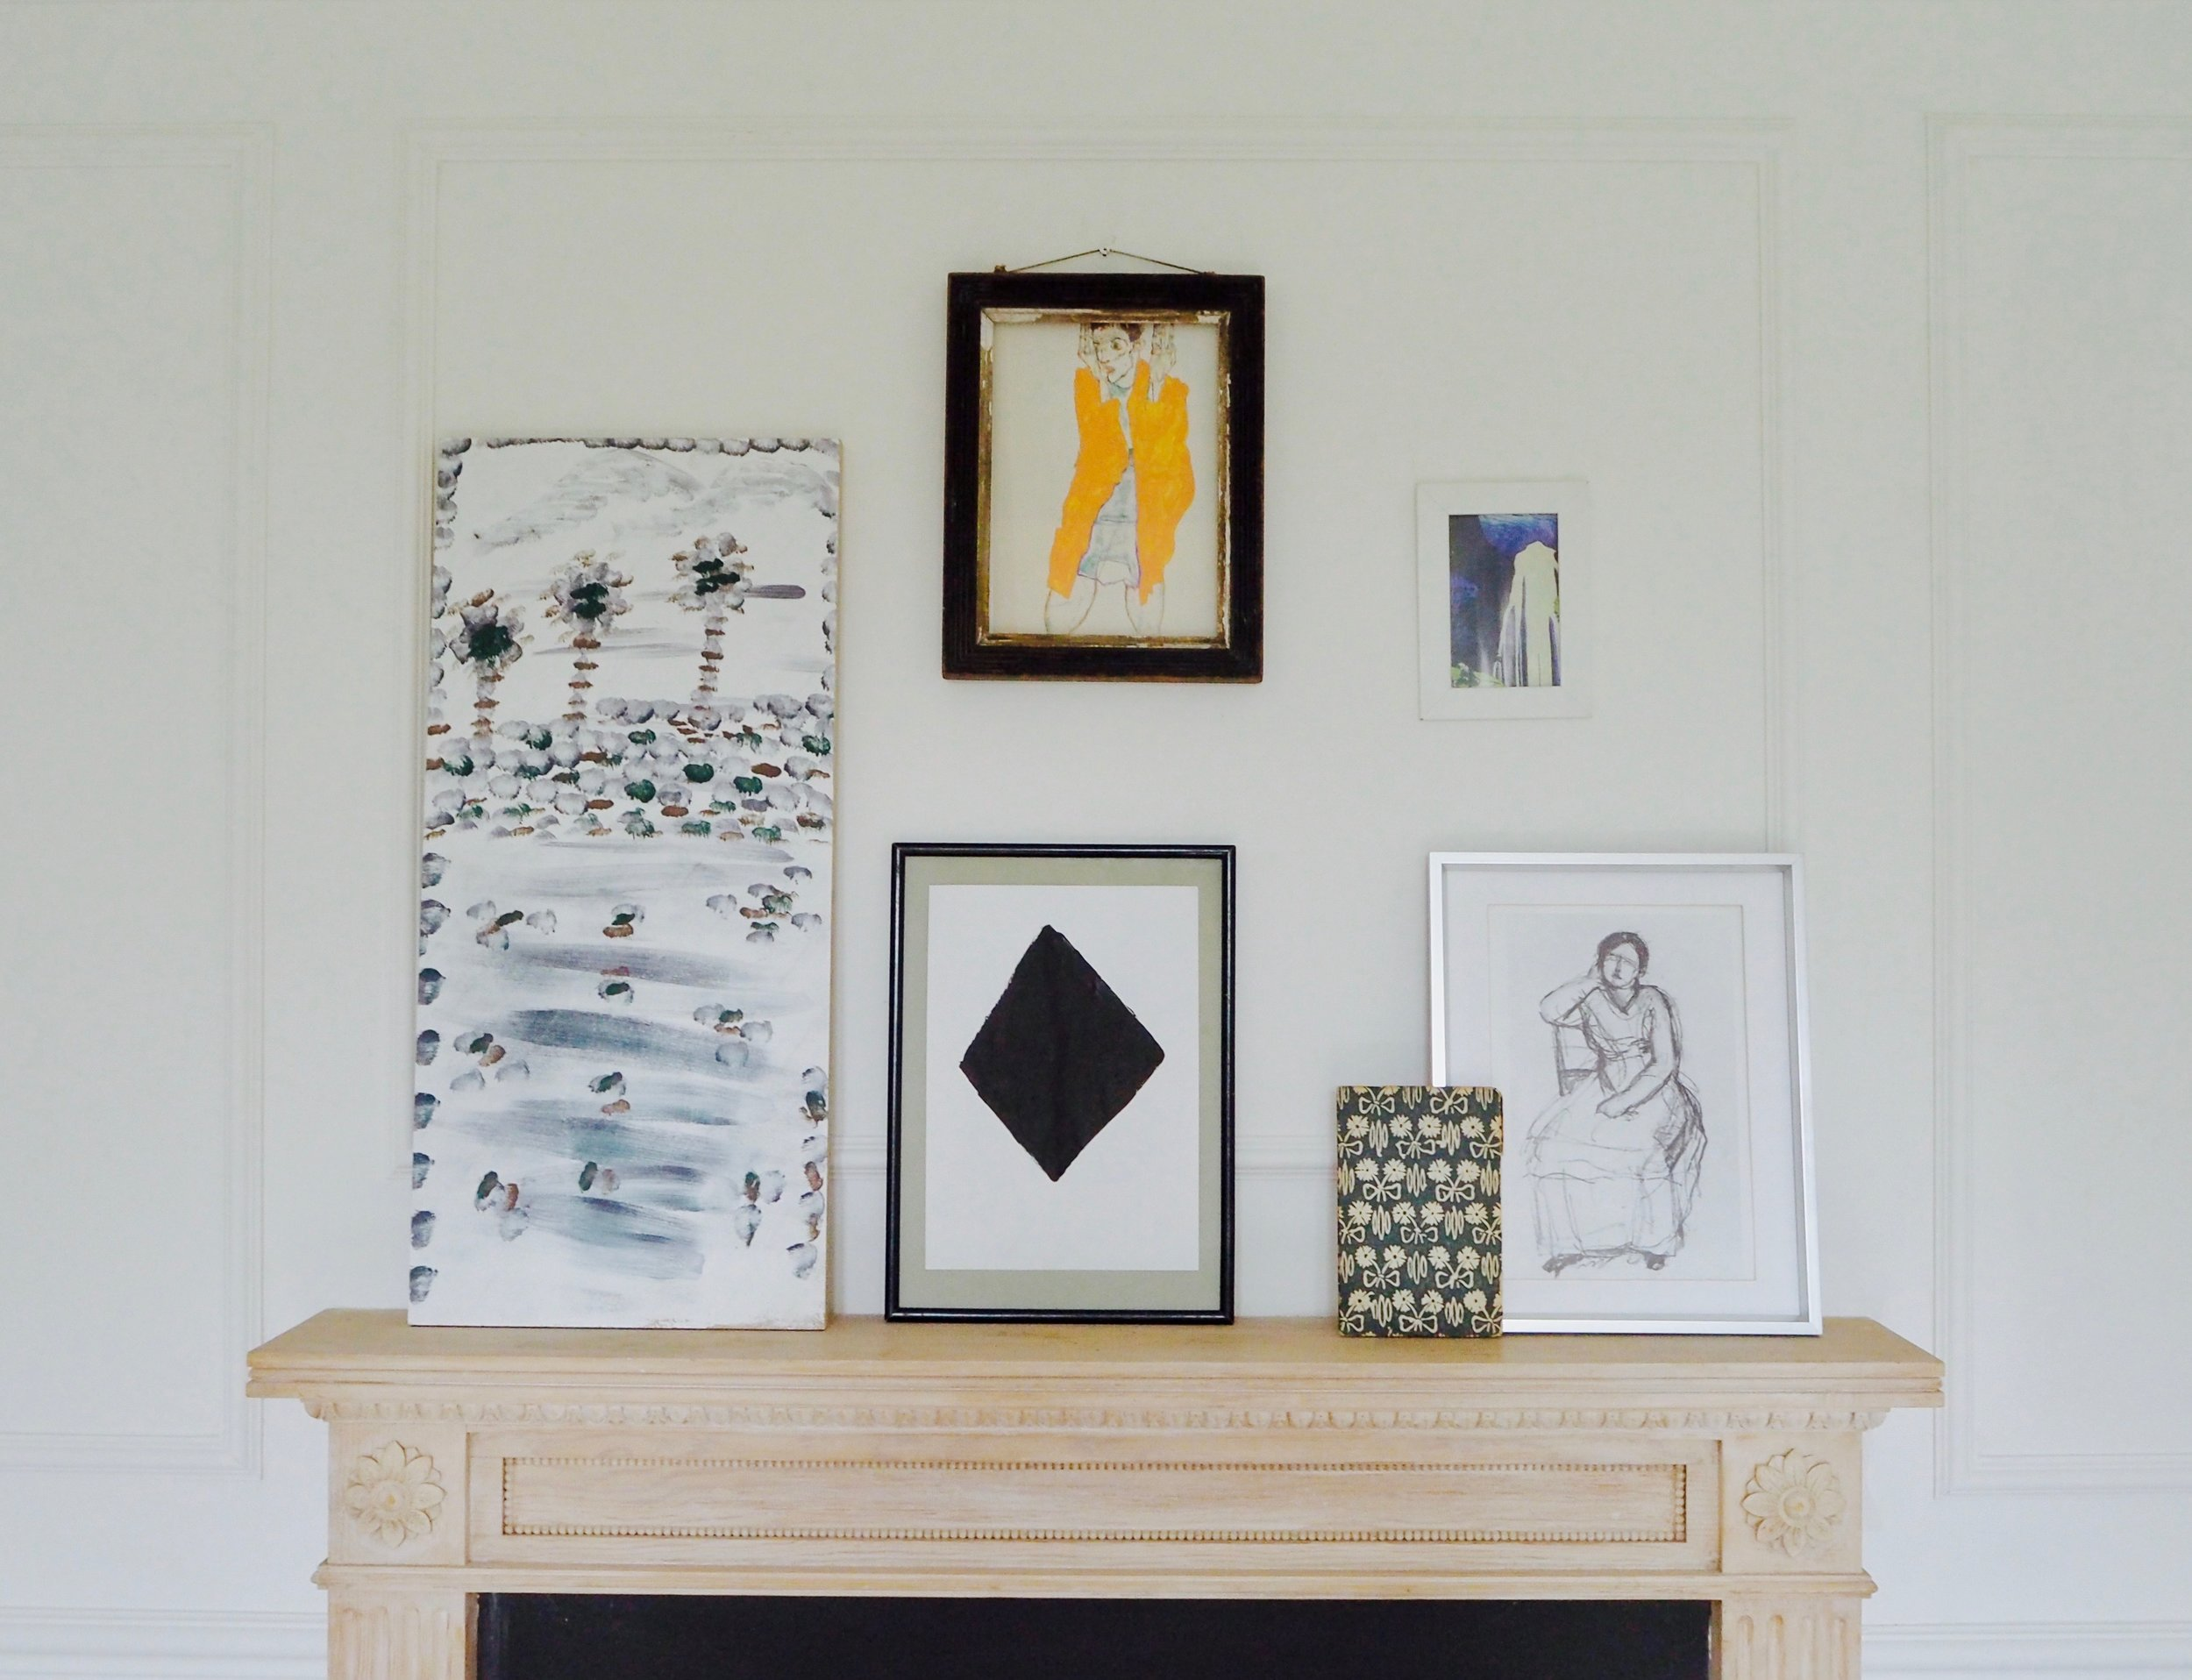 Gallery wall art for styling your mantelpiece by Camilla Pearl Blog.